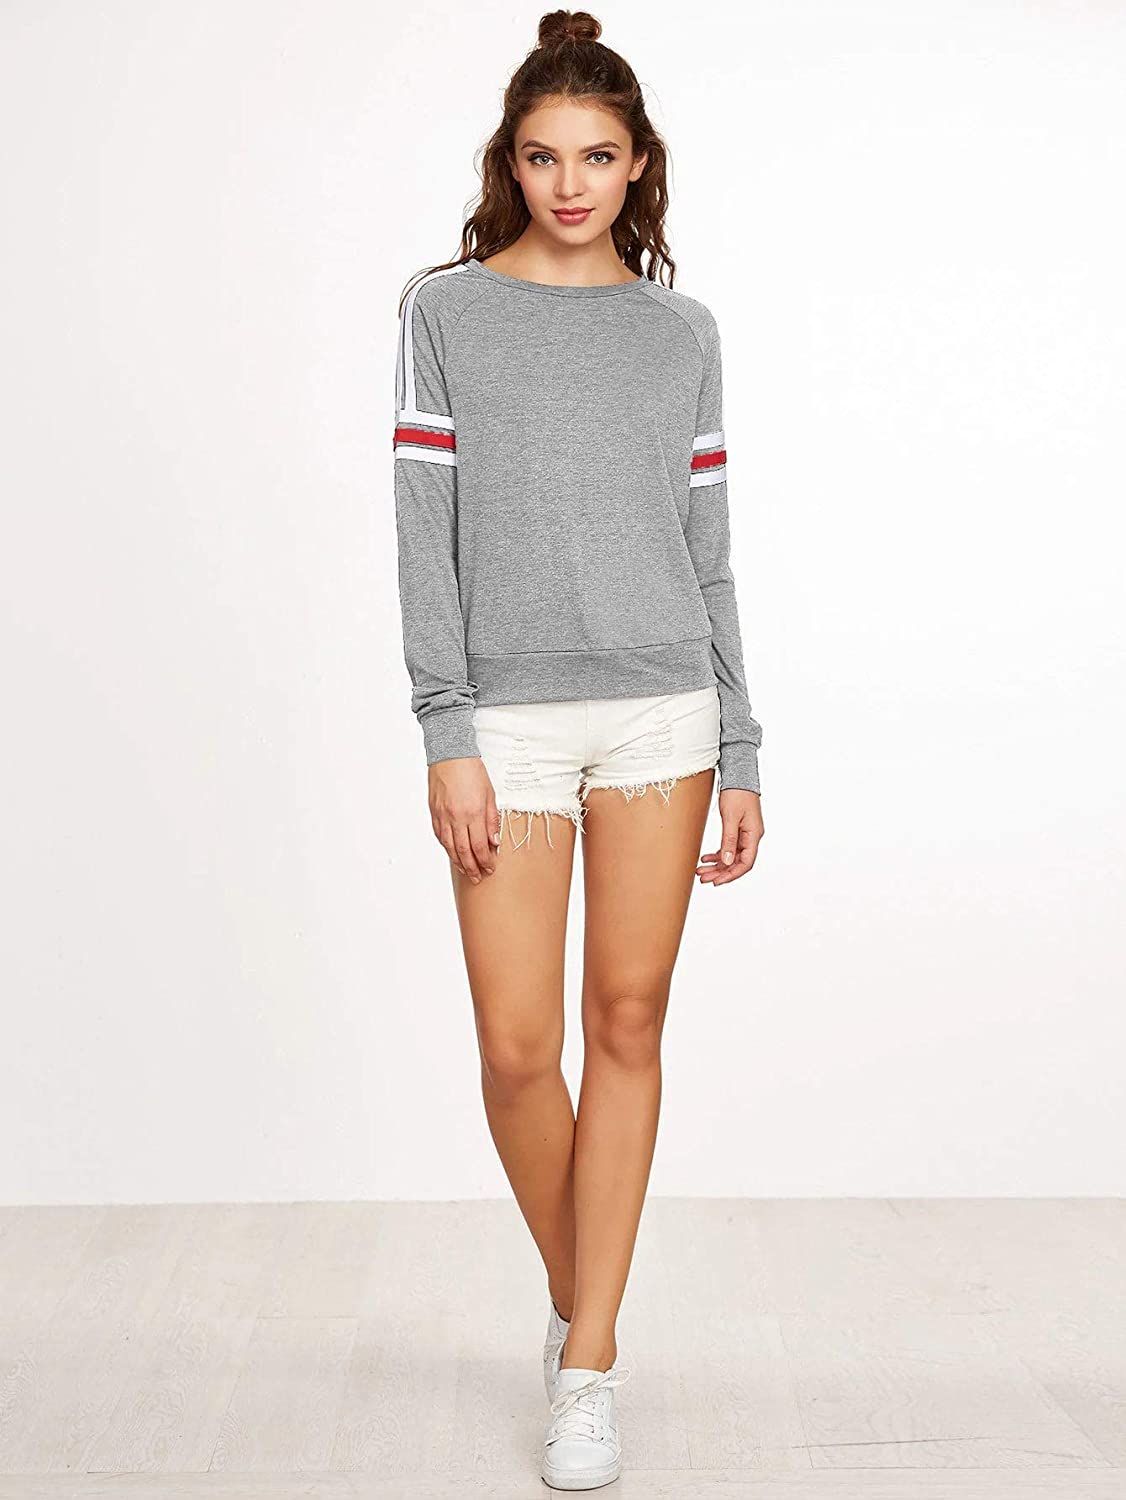 Romwe Womens Heather Varsity Stripe Raglan Sleeve Pullover Sweatshirt Grey XS